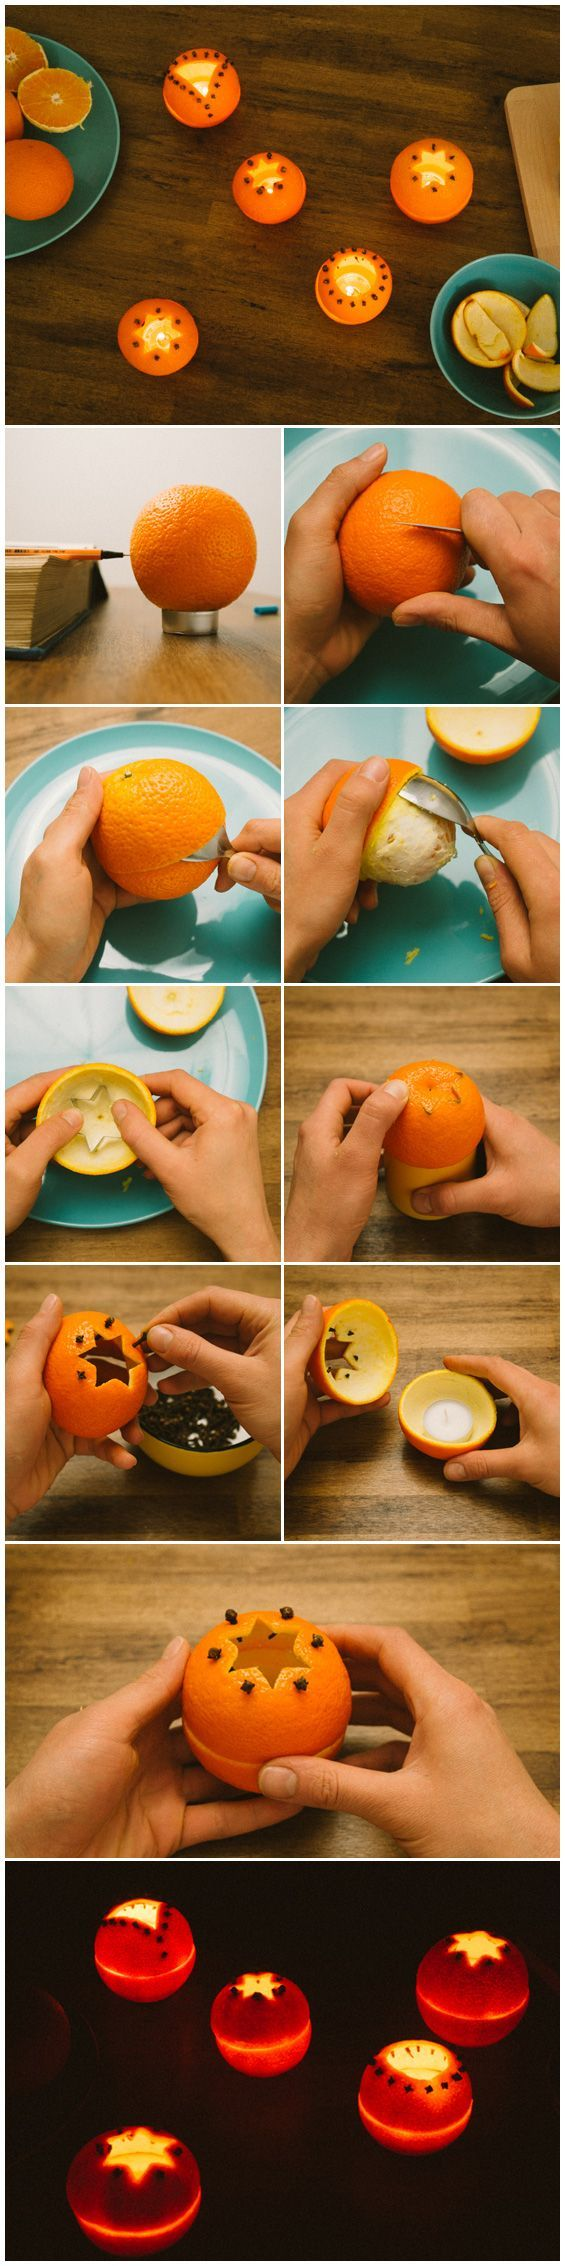 DIY candle holders made from oranges. Would be great for summer parties and citronella candles!u